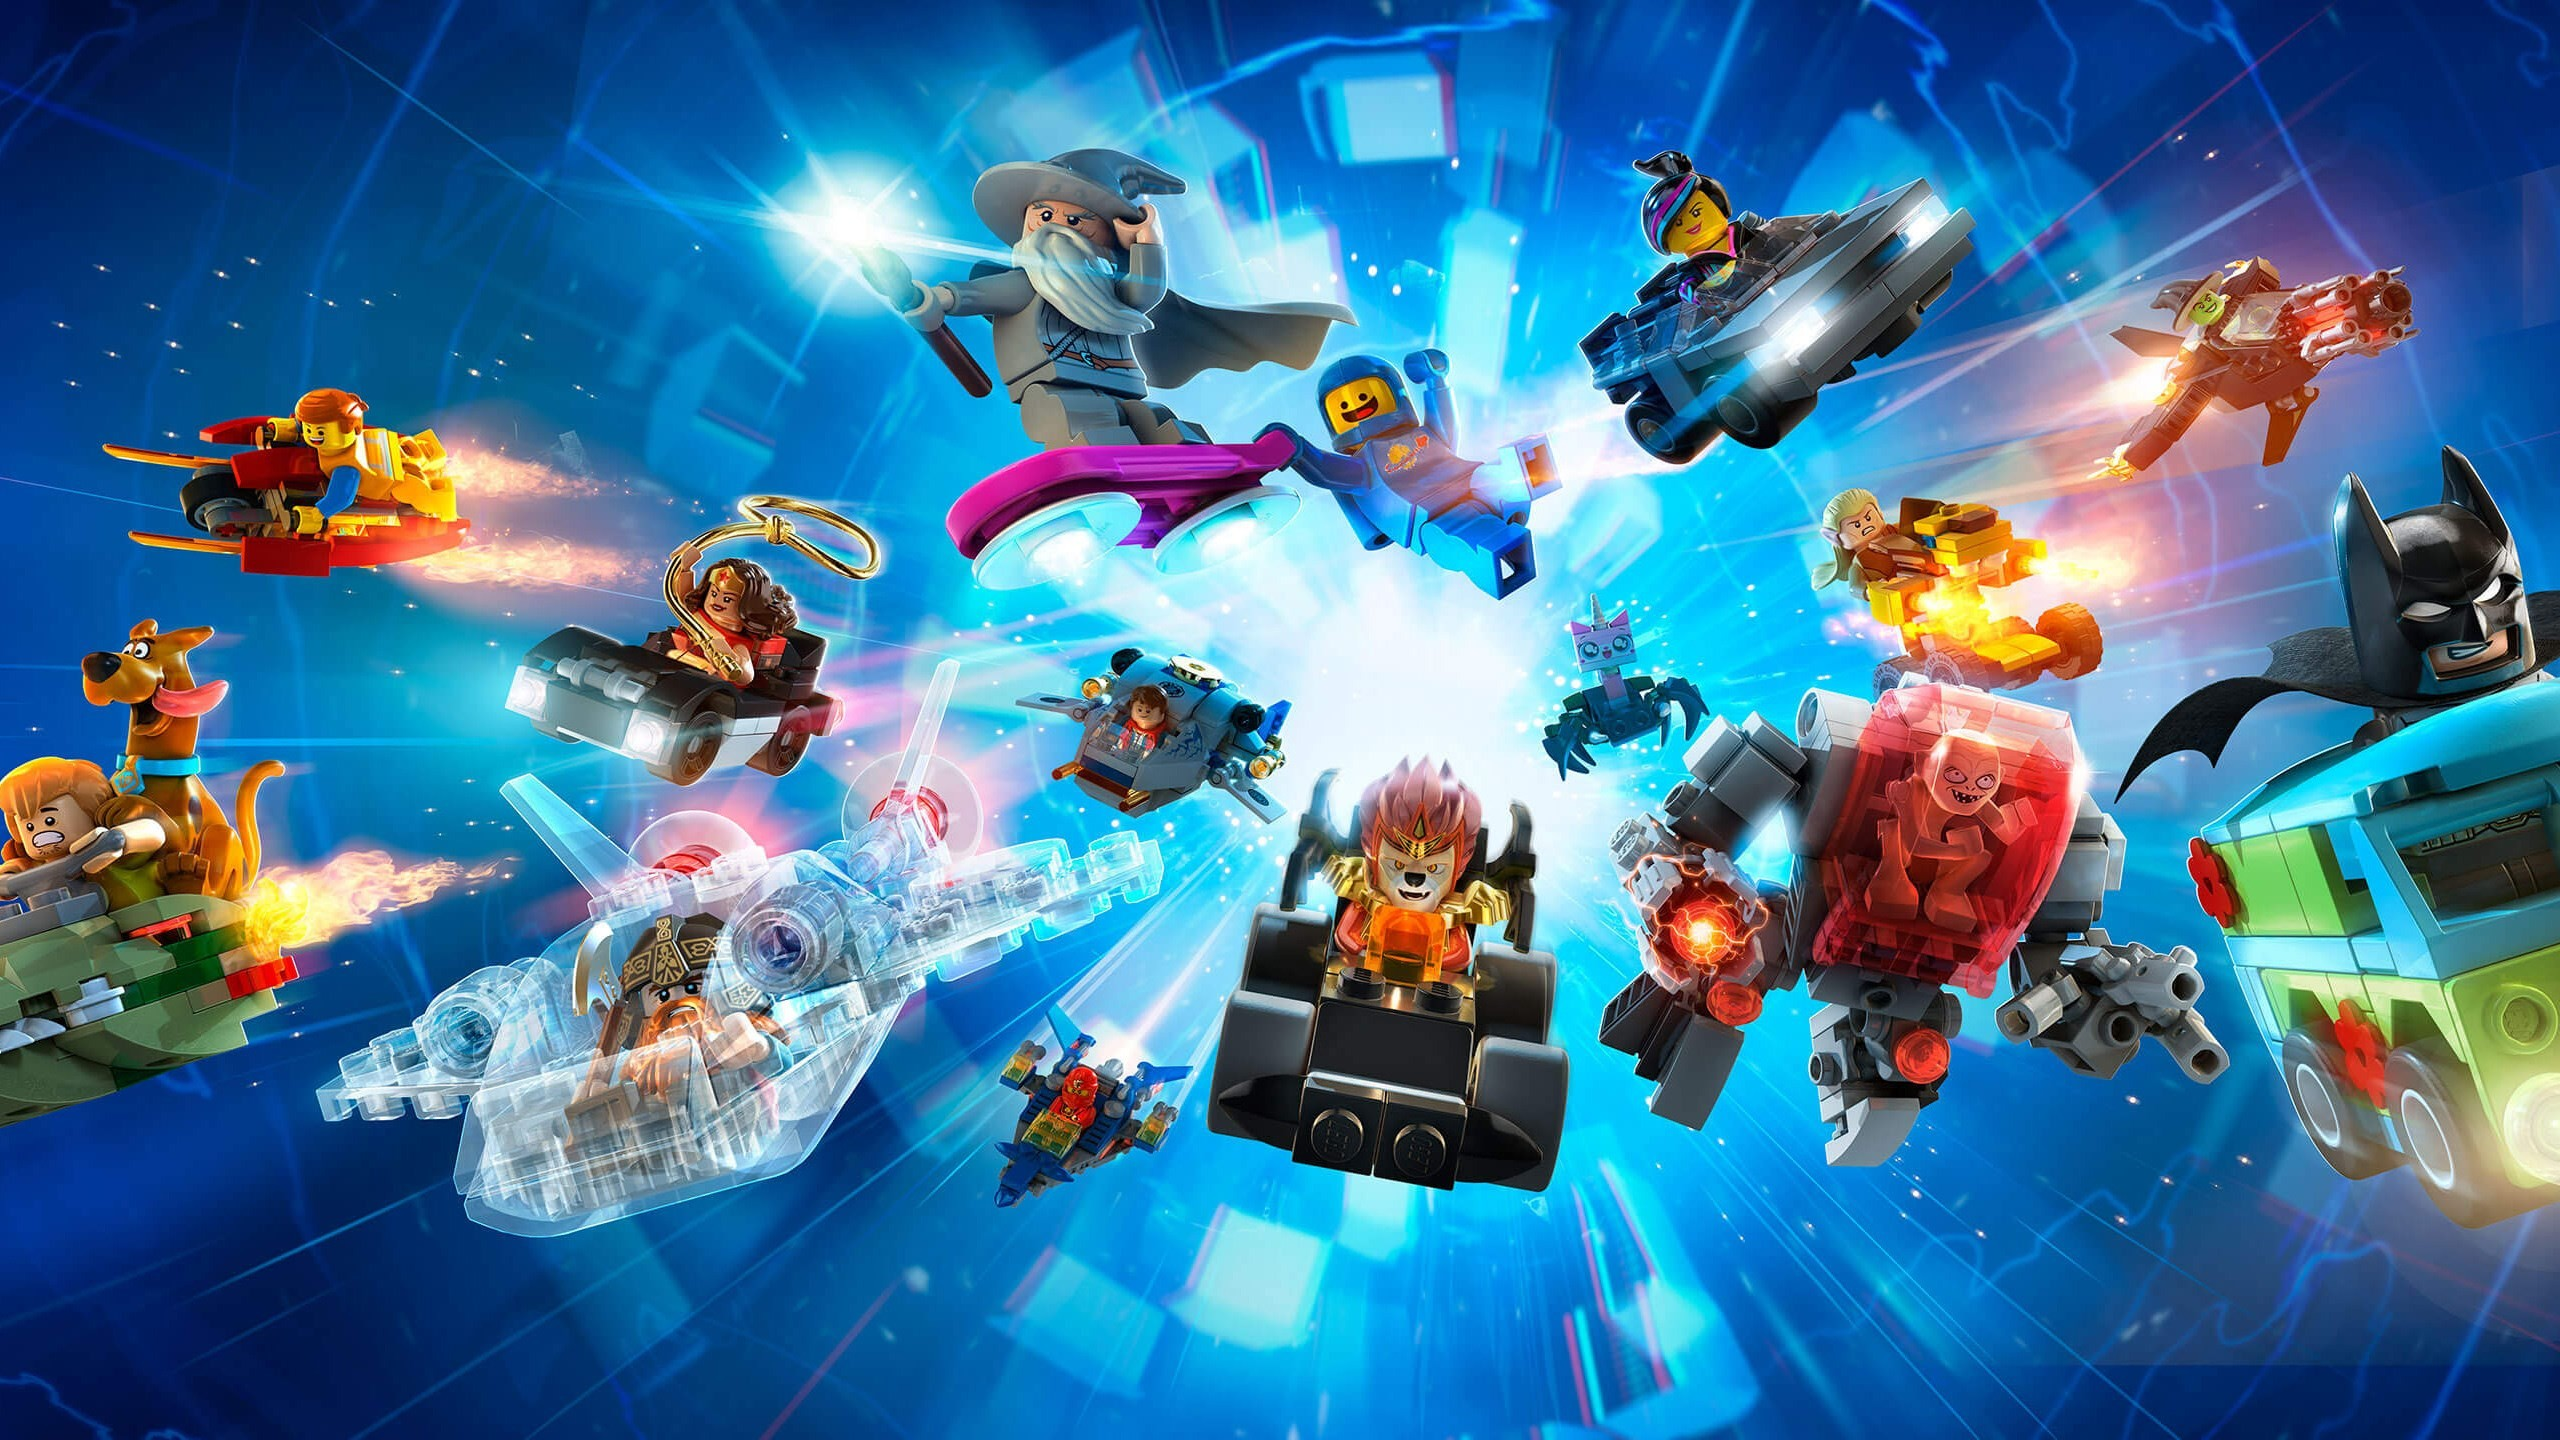 2560x1440 lego dimensions game hd wallpapers